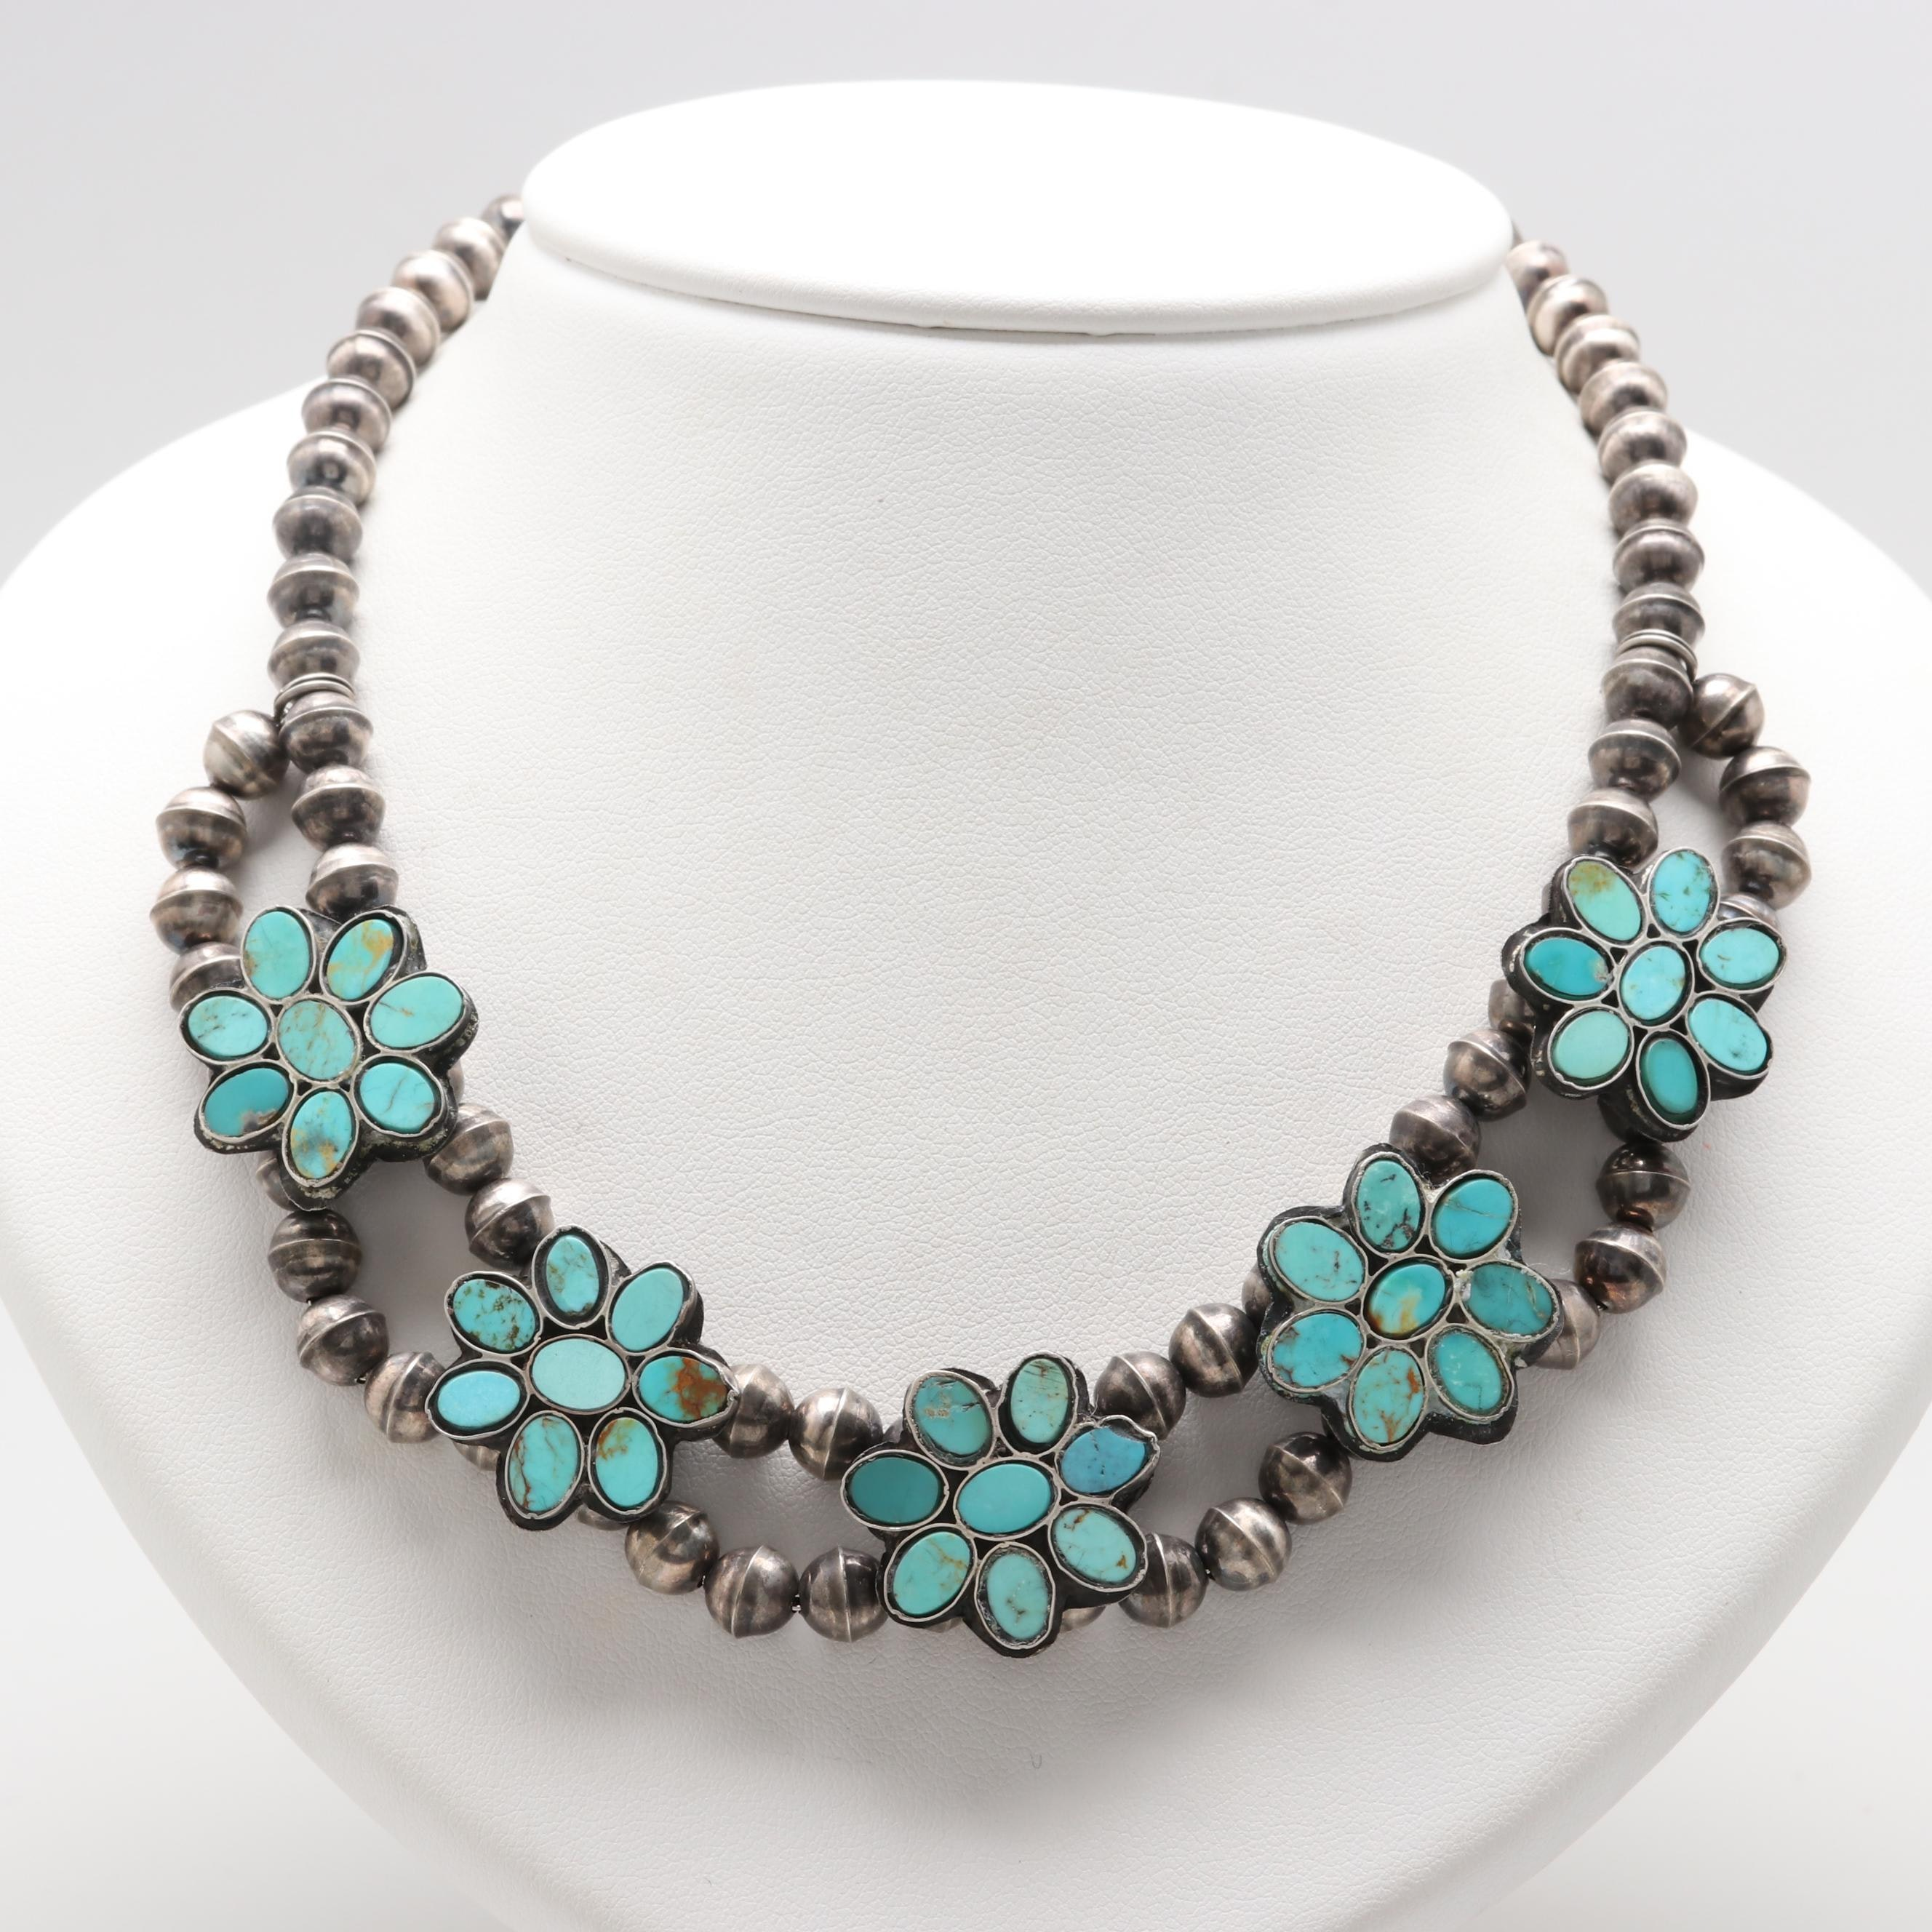 Southwestern Style Sterling Silver Turquoise Floral Necklace